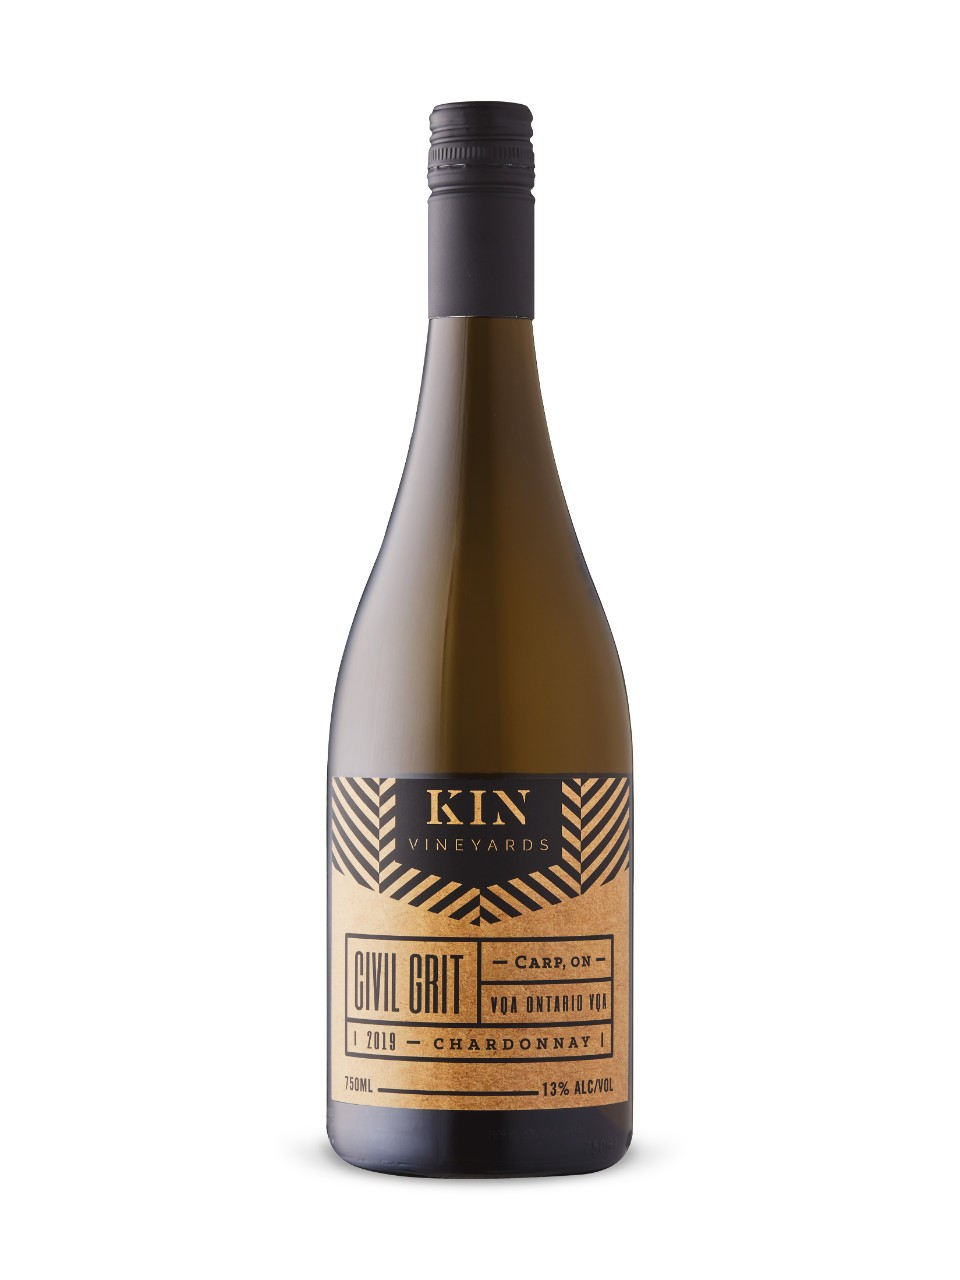 KIN Vineyards Civil Grit Chardonnay 2019 from LCBO